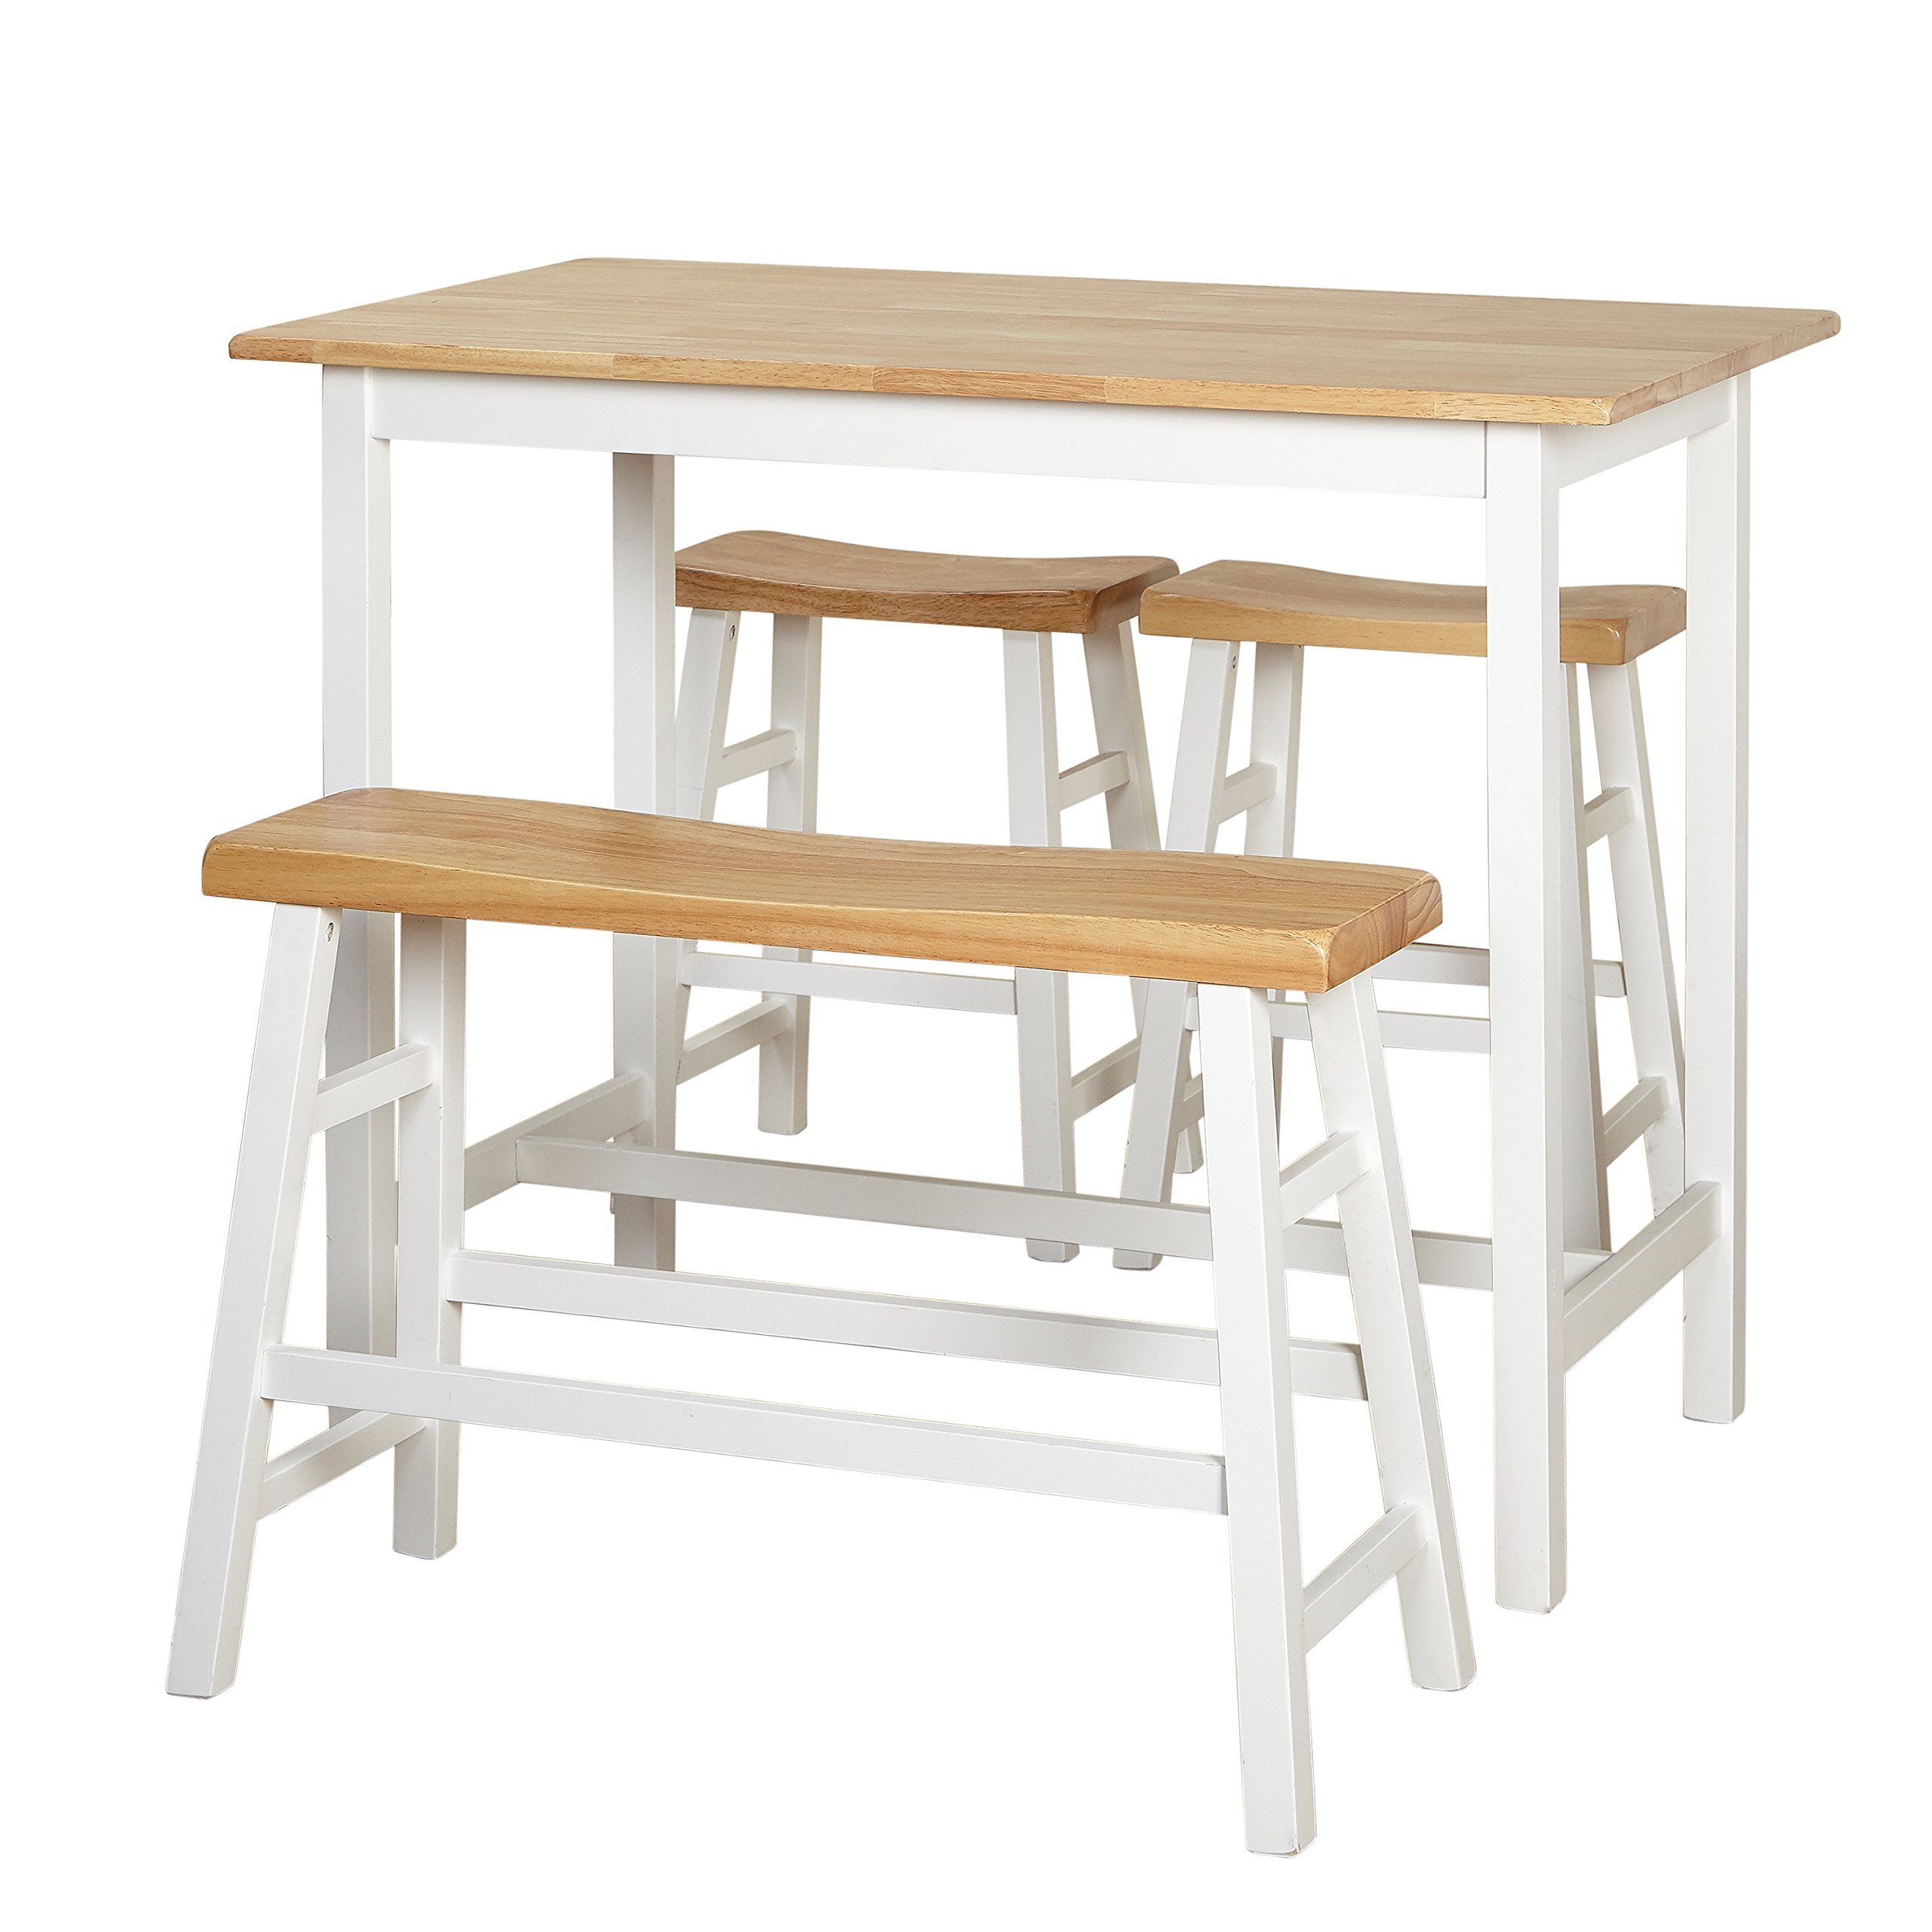 Target Marketing Systems 64414WHT Galena Counter Height Set (4-Piece), Natural/White